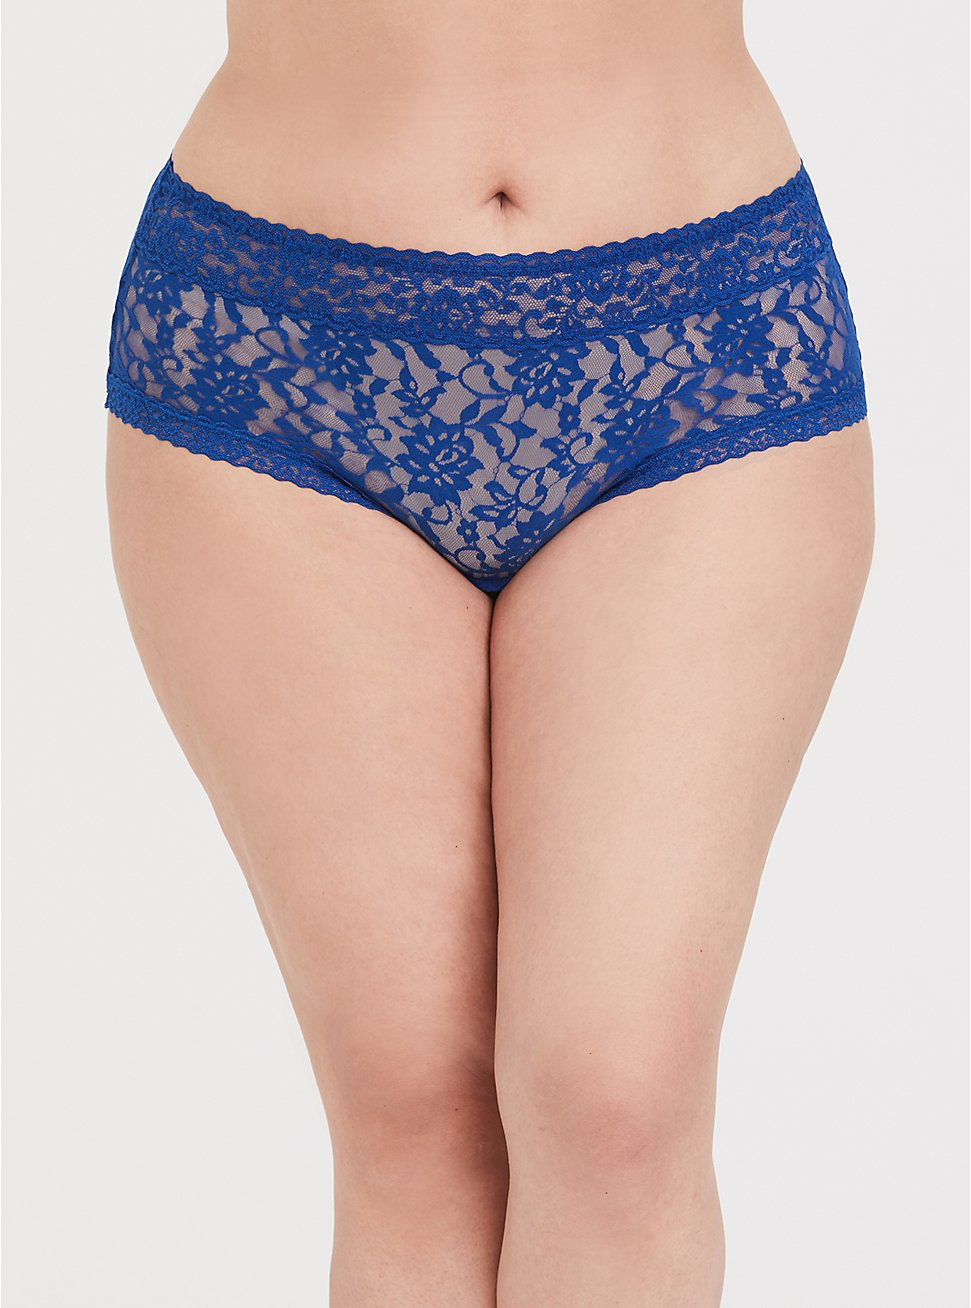 Plus Size Sapphire Blue Lacey Cheeky Panty, LIMOGES, hi-res